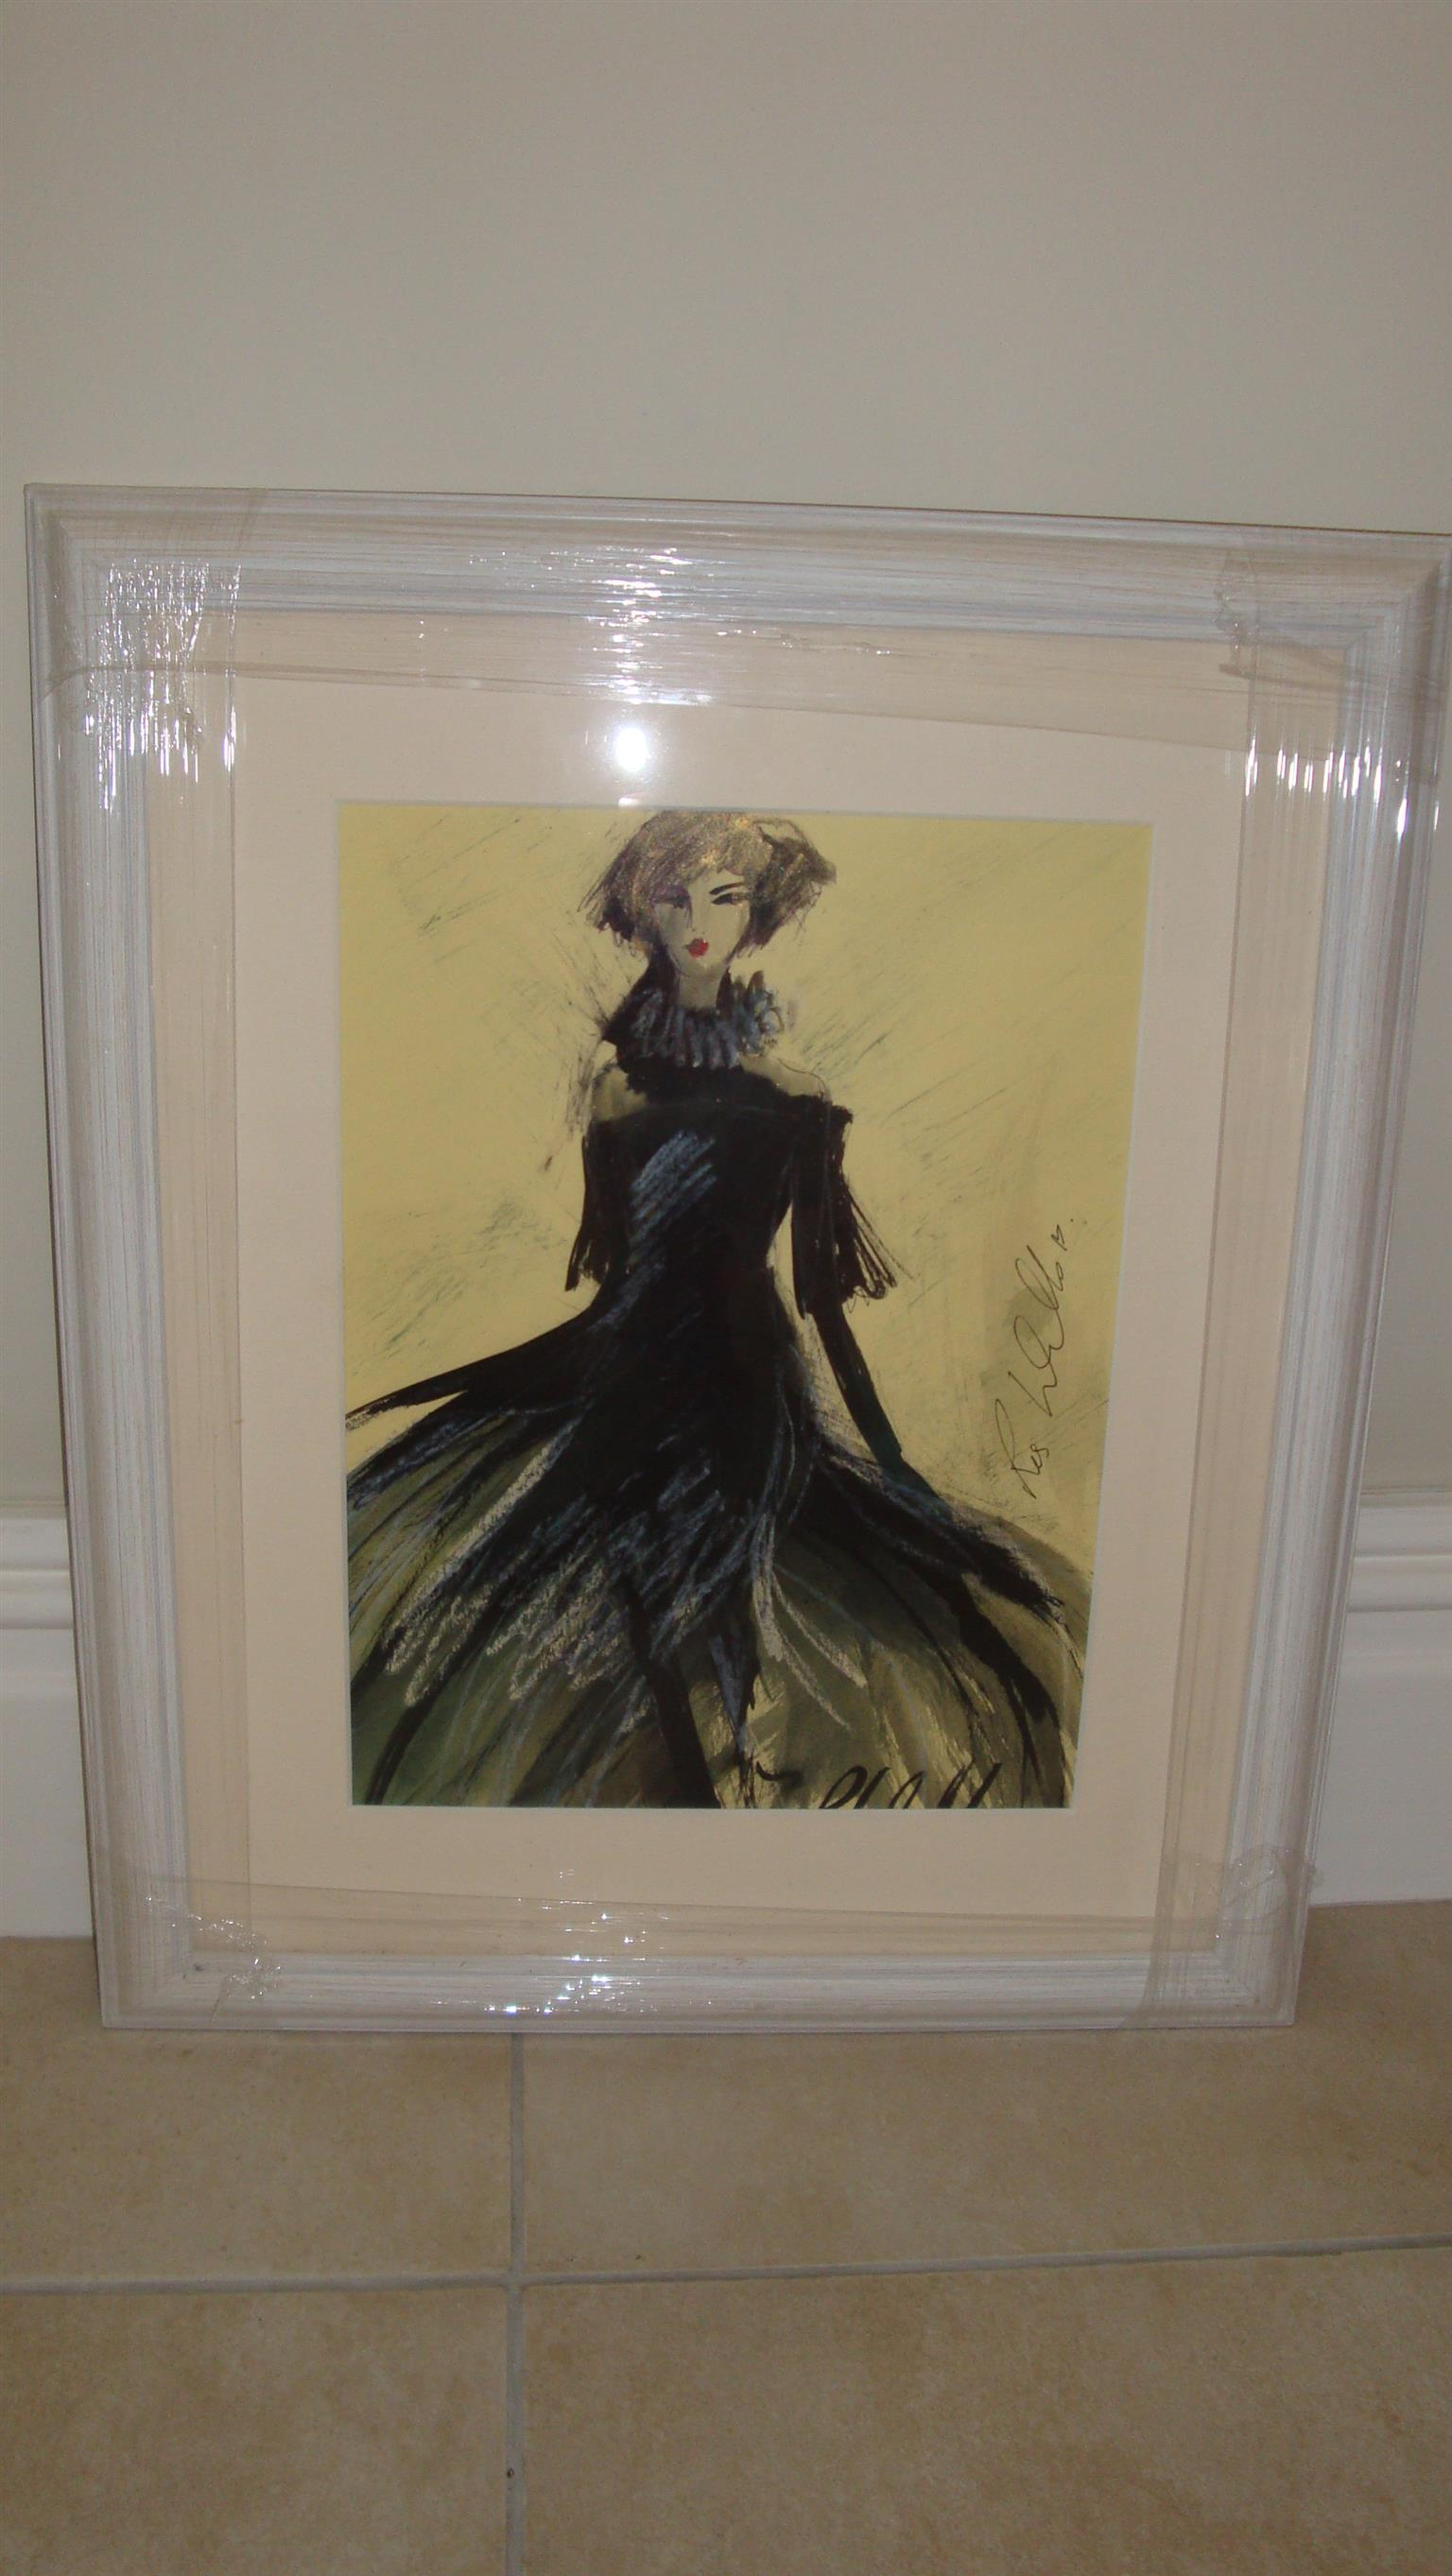 Affordable, original and framed art by Irish artist Ros Webb - girl with black flared dress